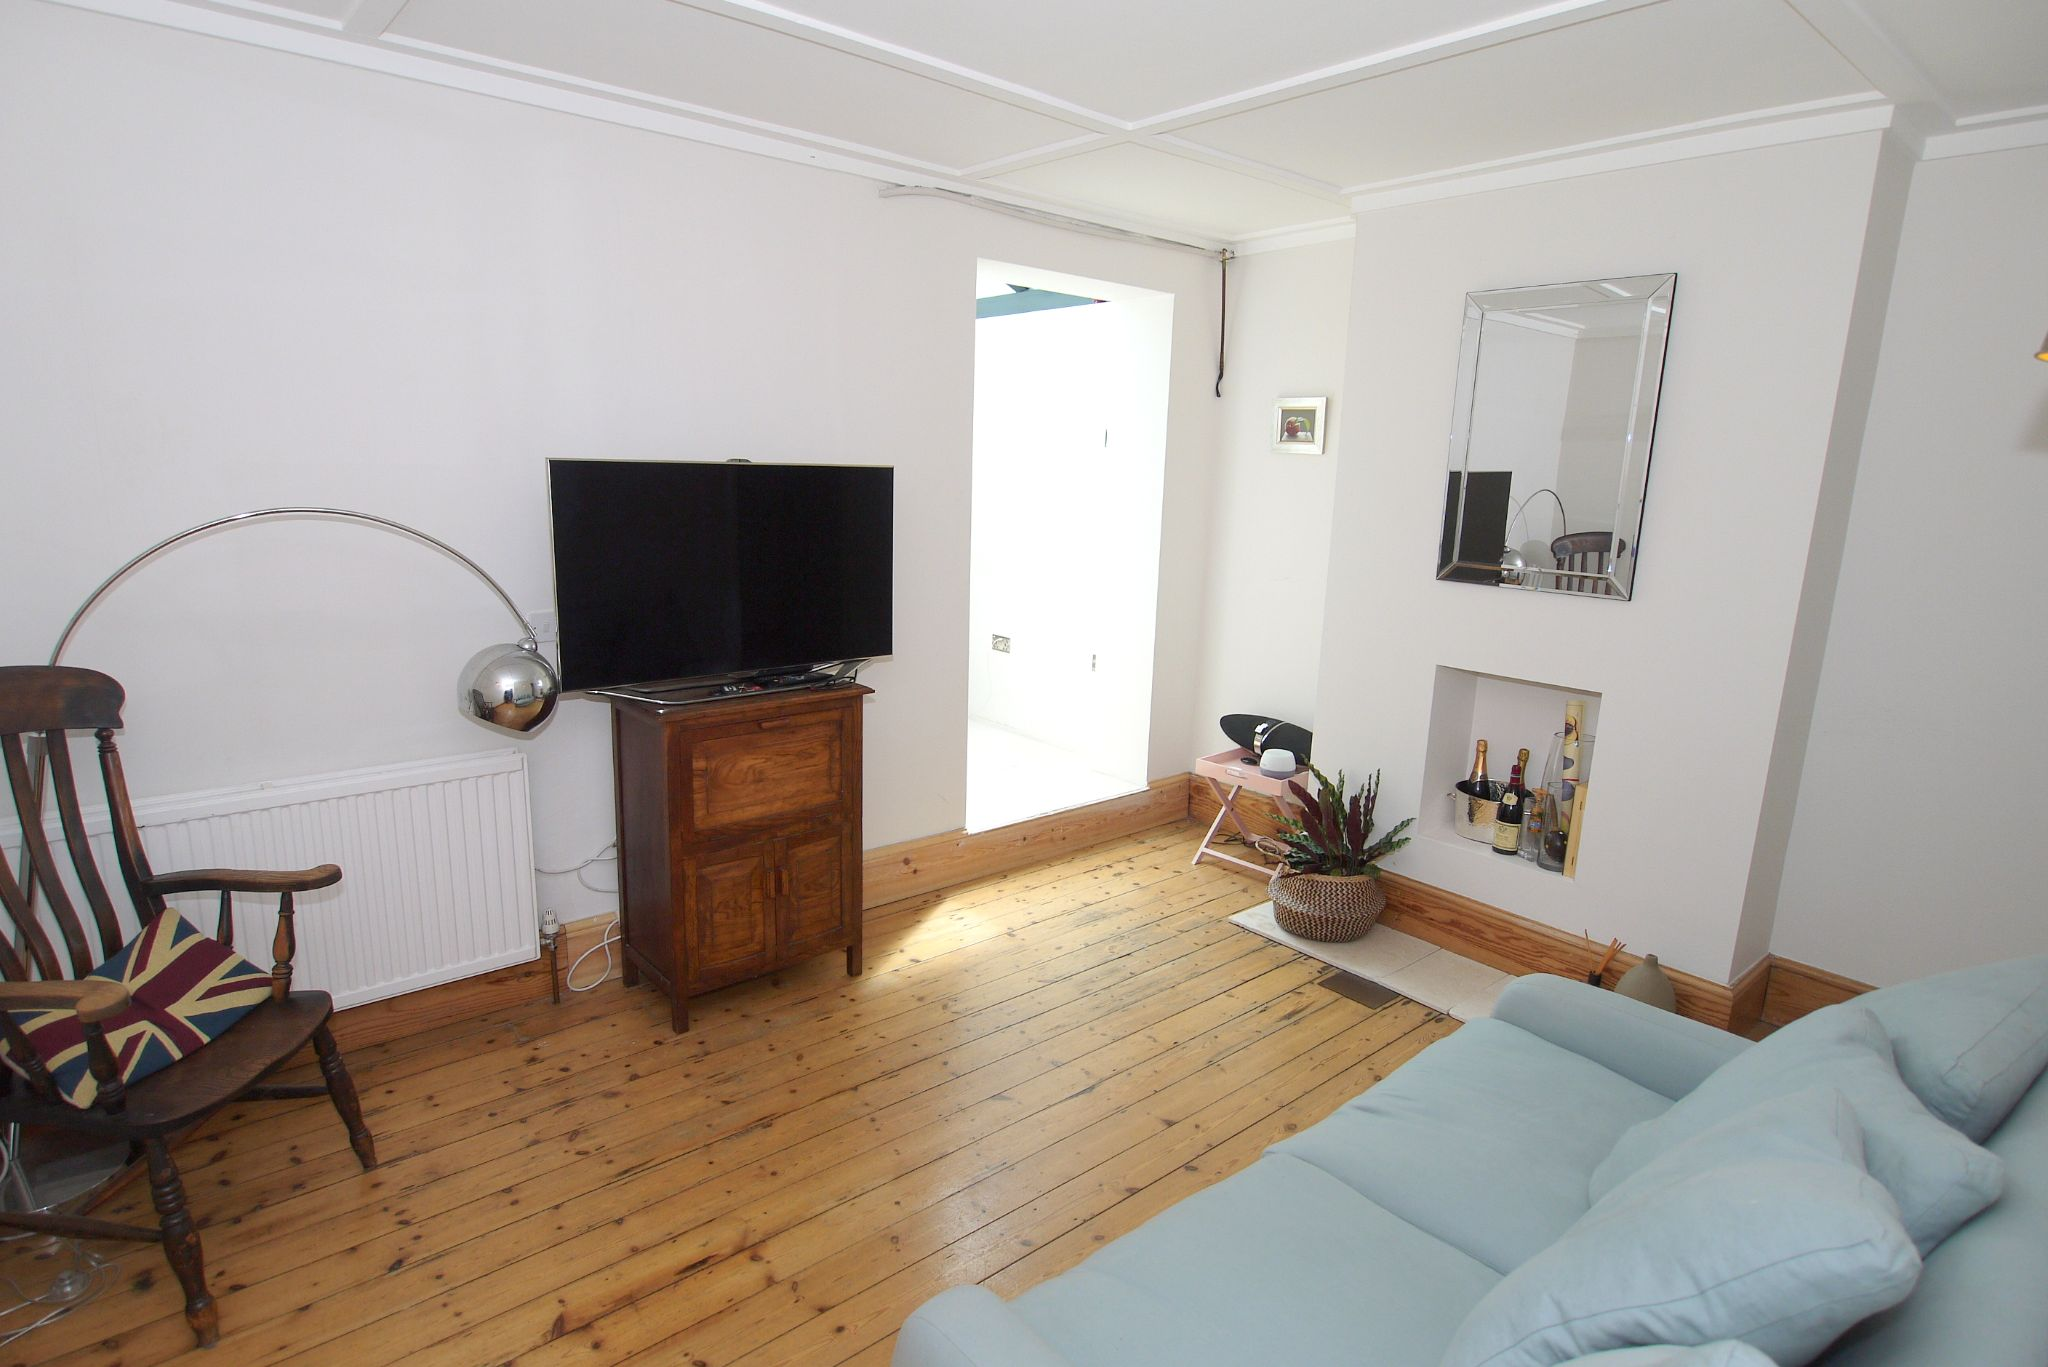 2 bedroom mid terraced house Sold in Seal - Photograph 5